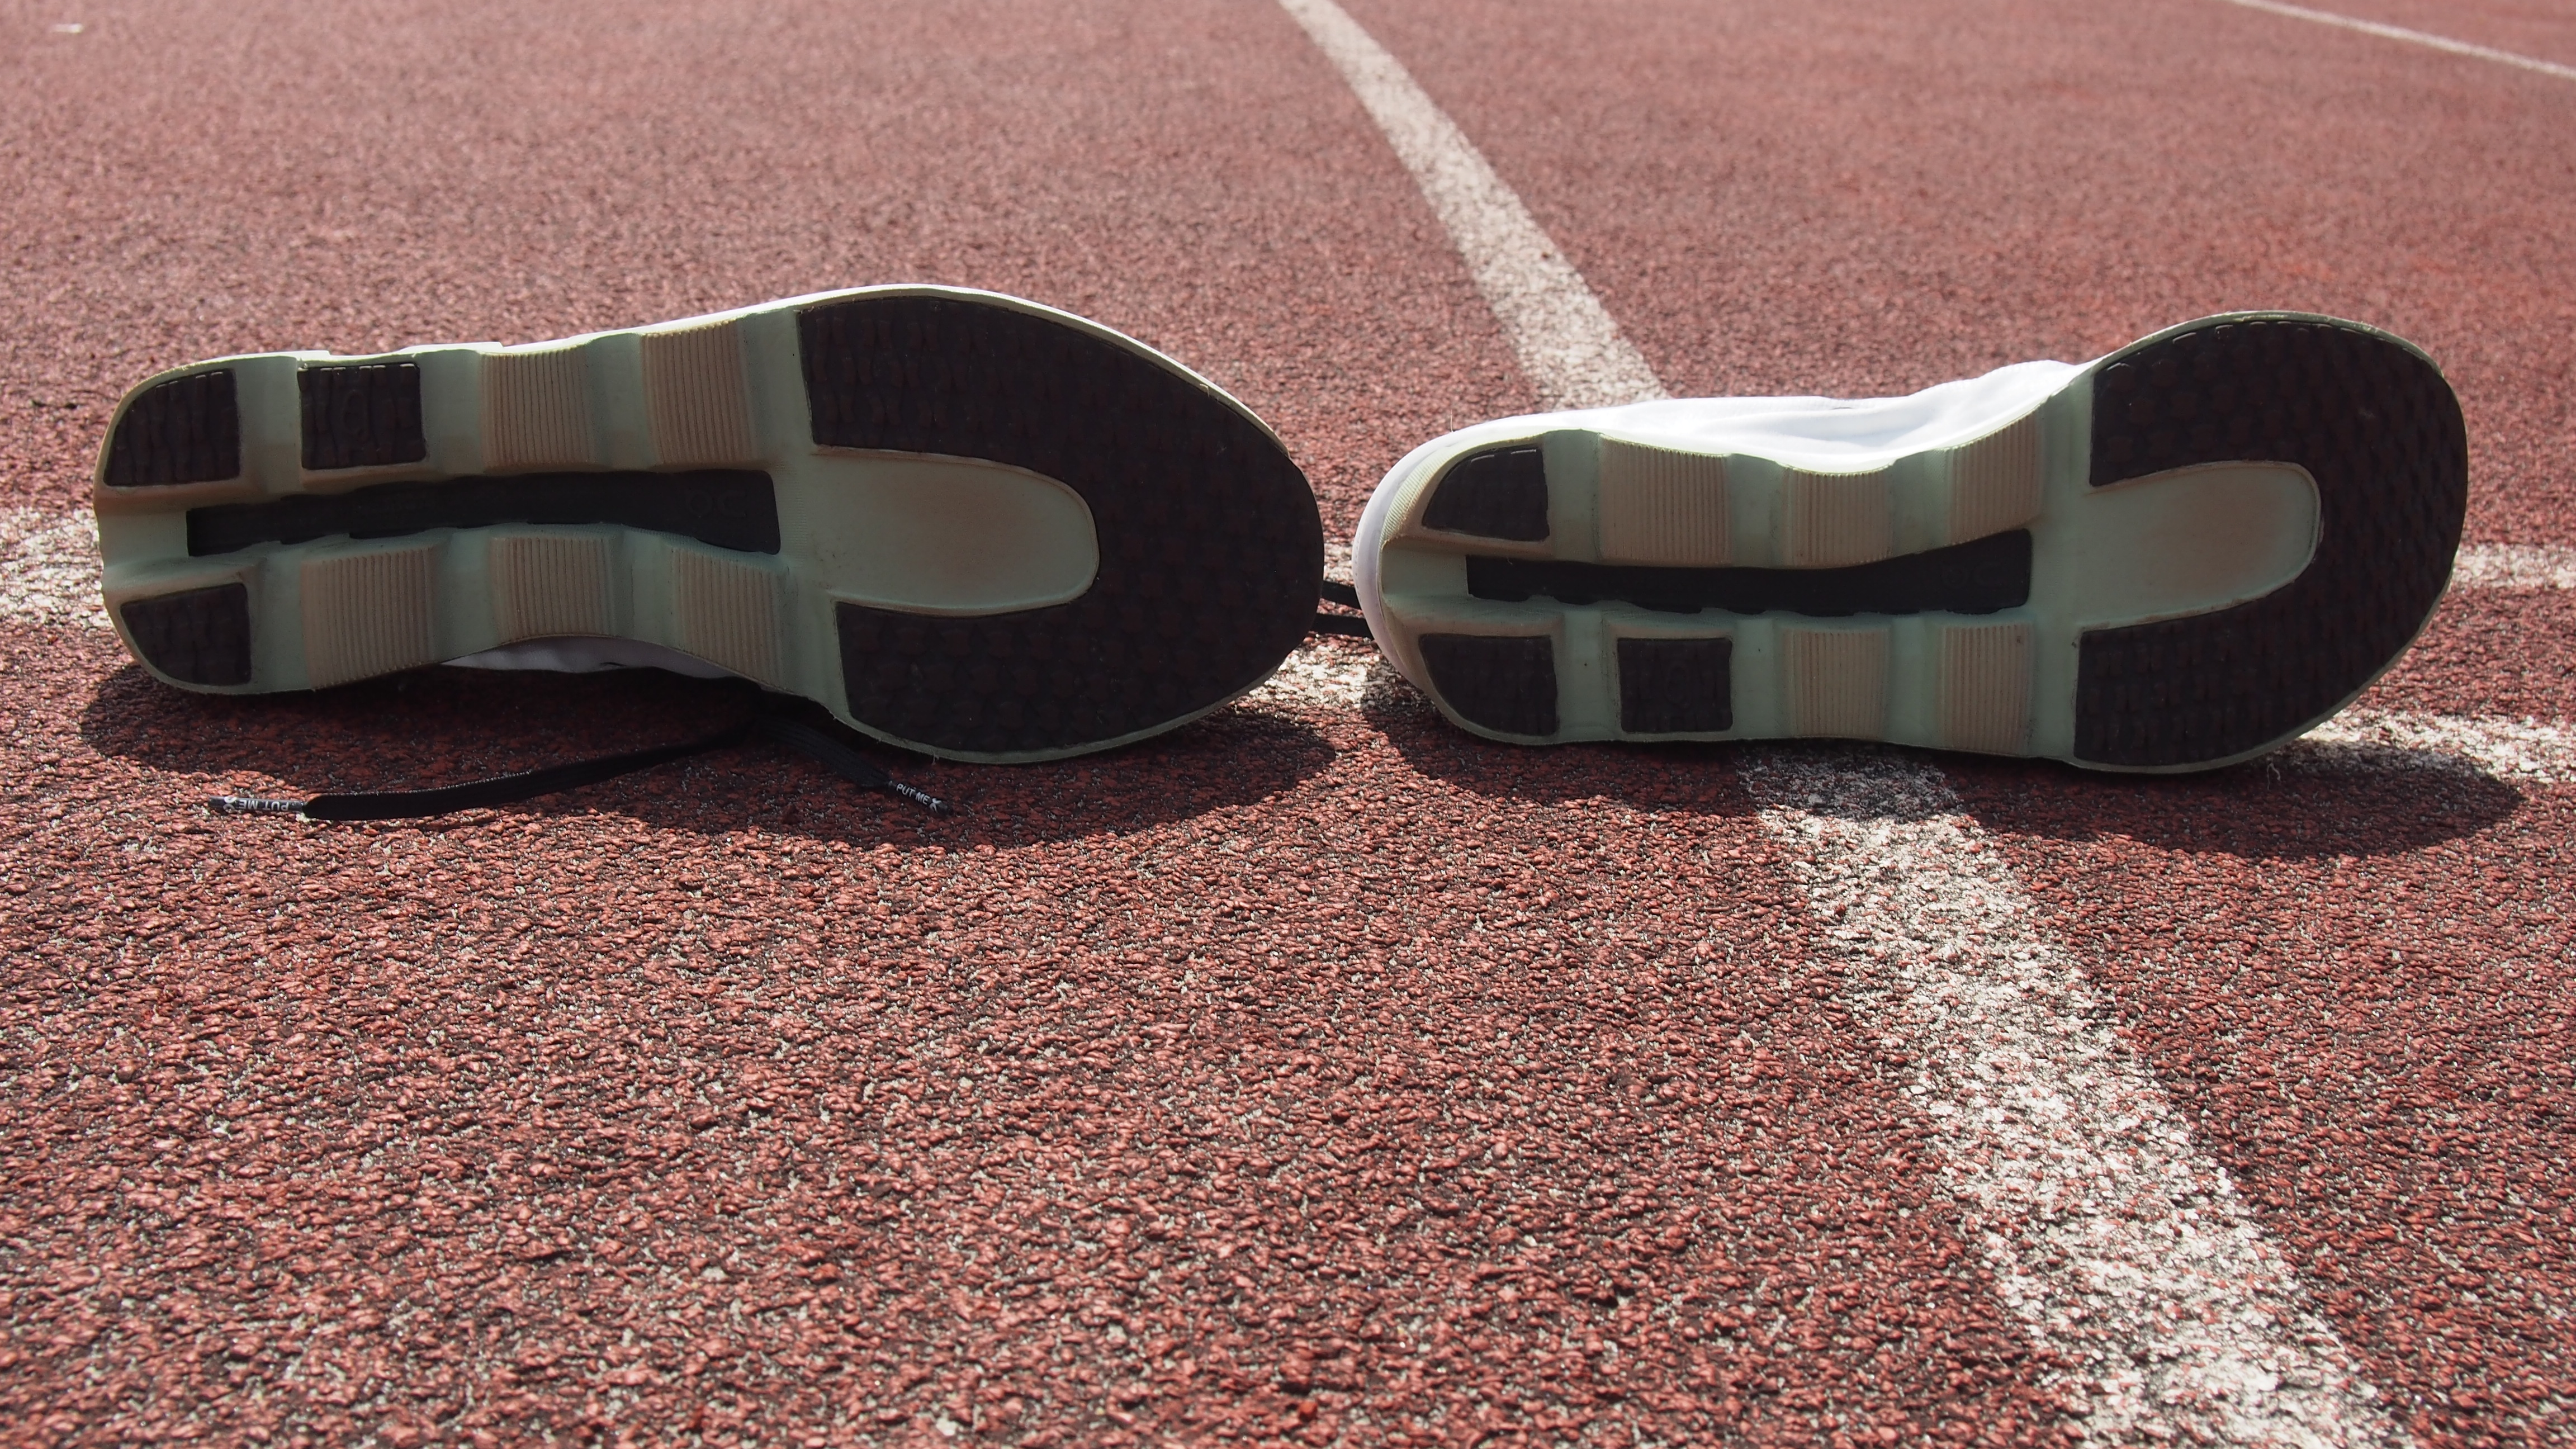 Pair of On Cloudboom Echo running shoes on a running track, with their soles showing